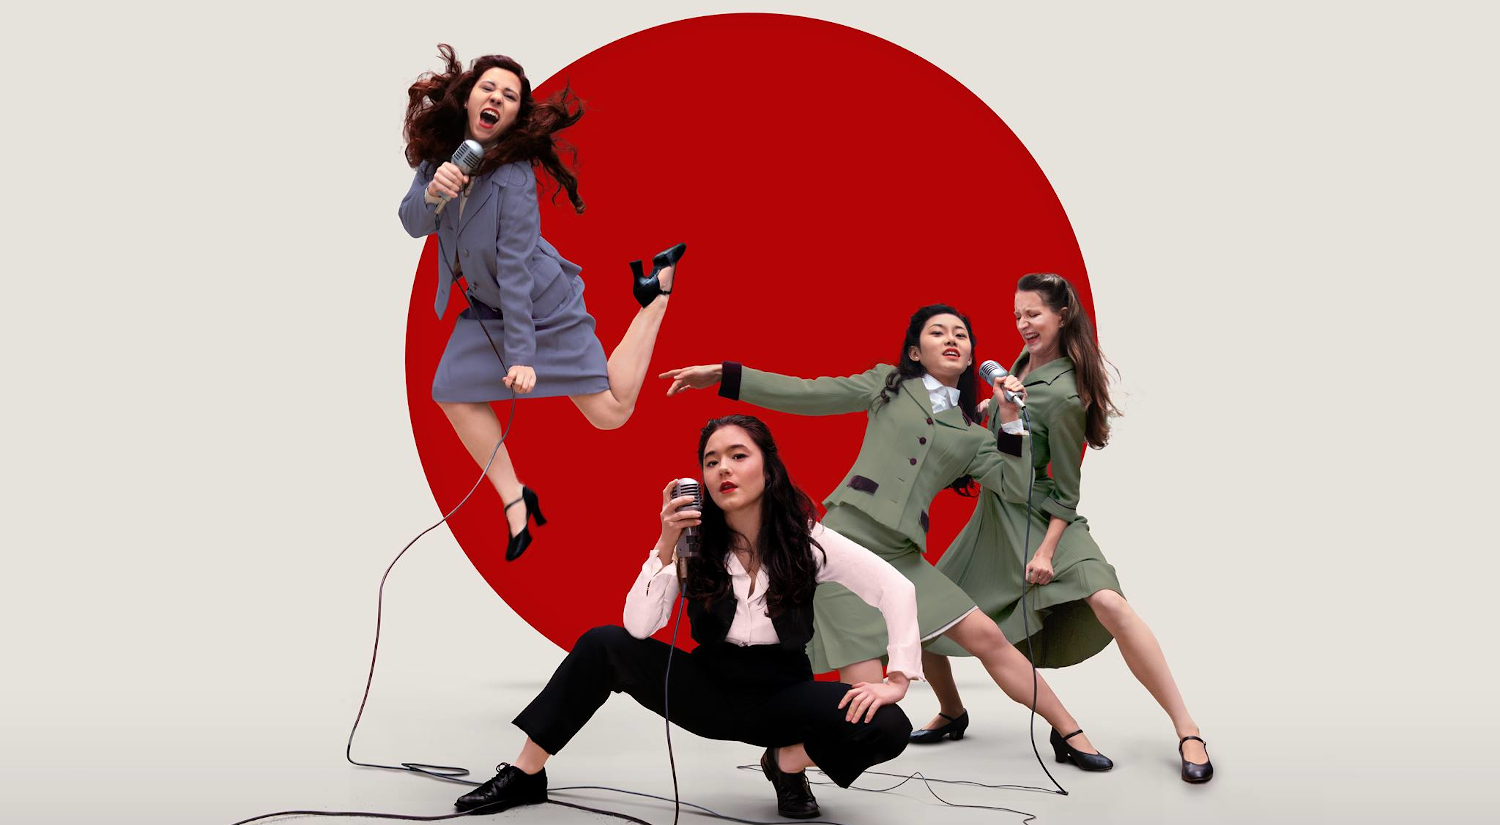 'TOKYO ROSE' presented by Burnt Lemon Theatre